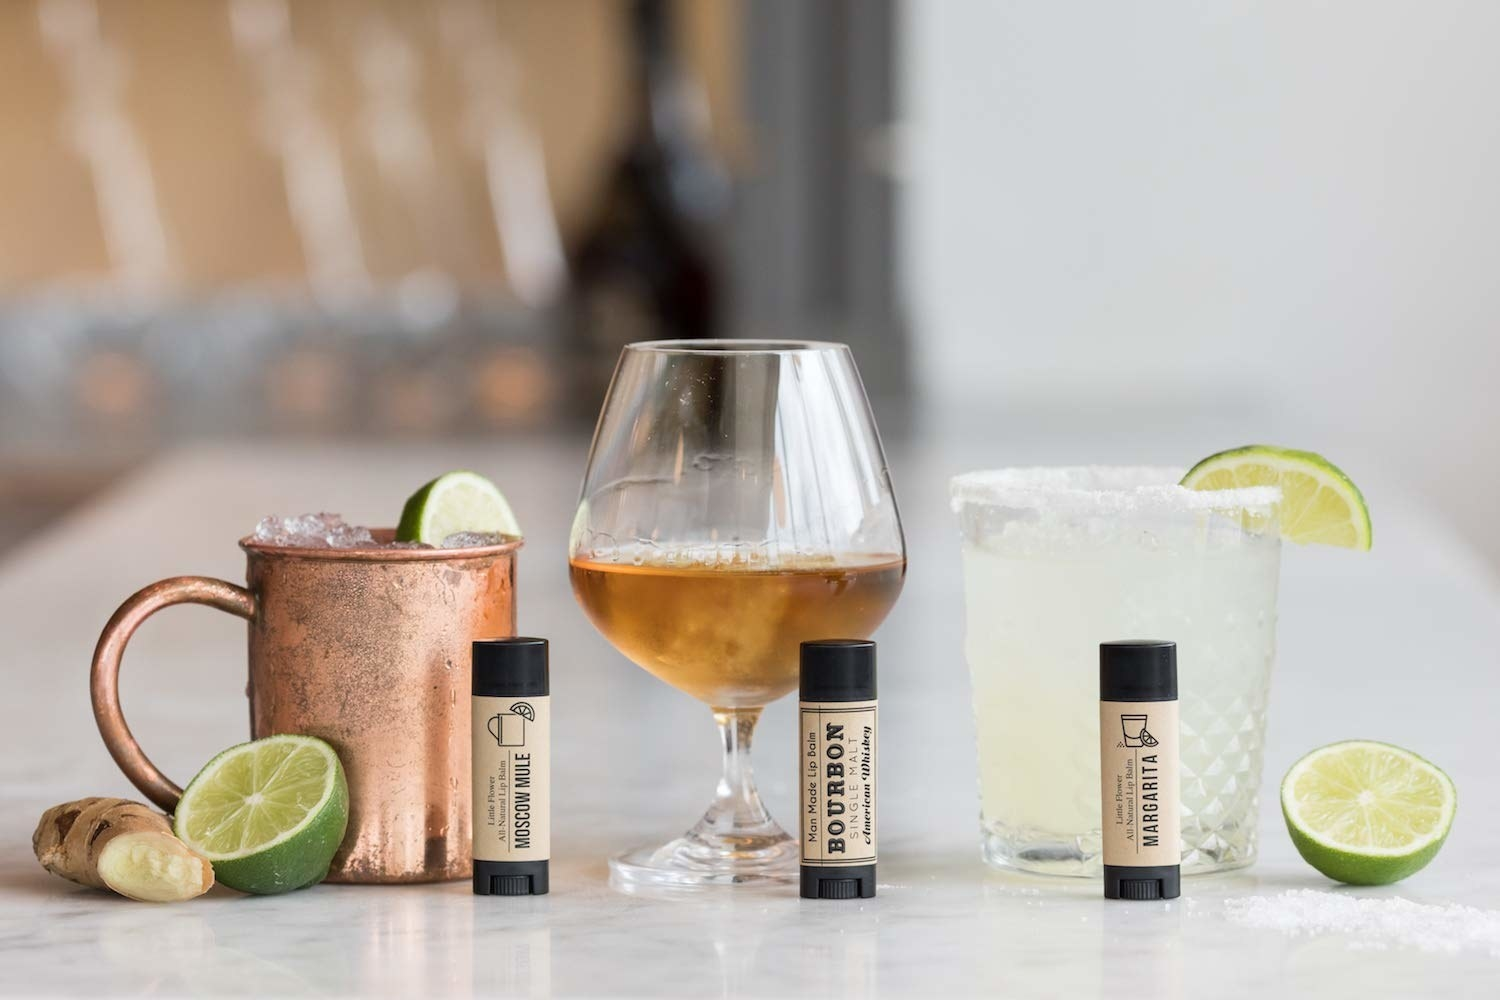 moscow mule, whiskey, and margarita with corresponding lip balms